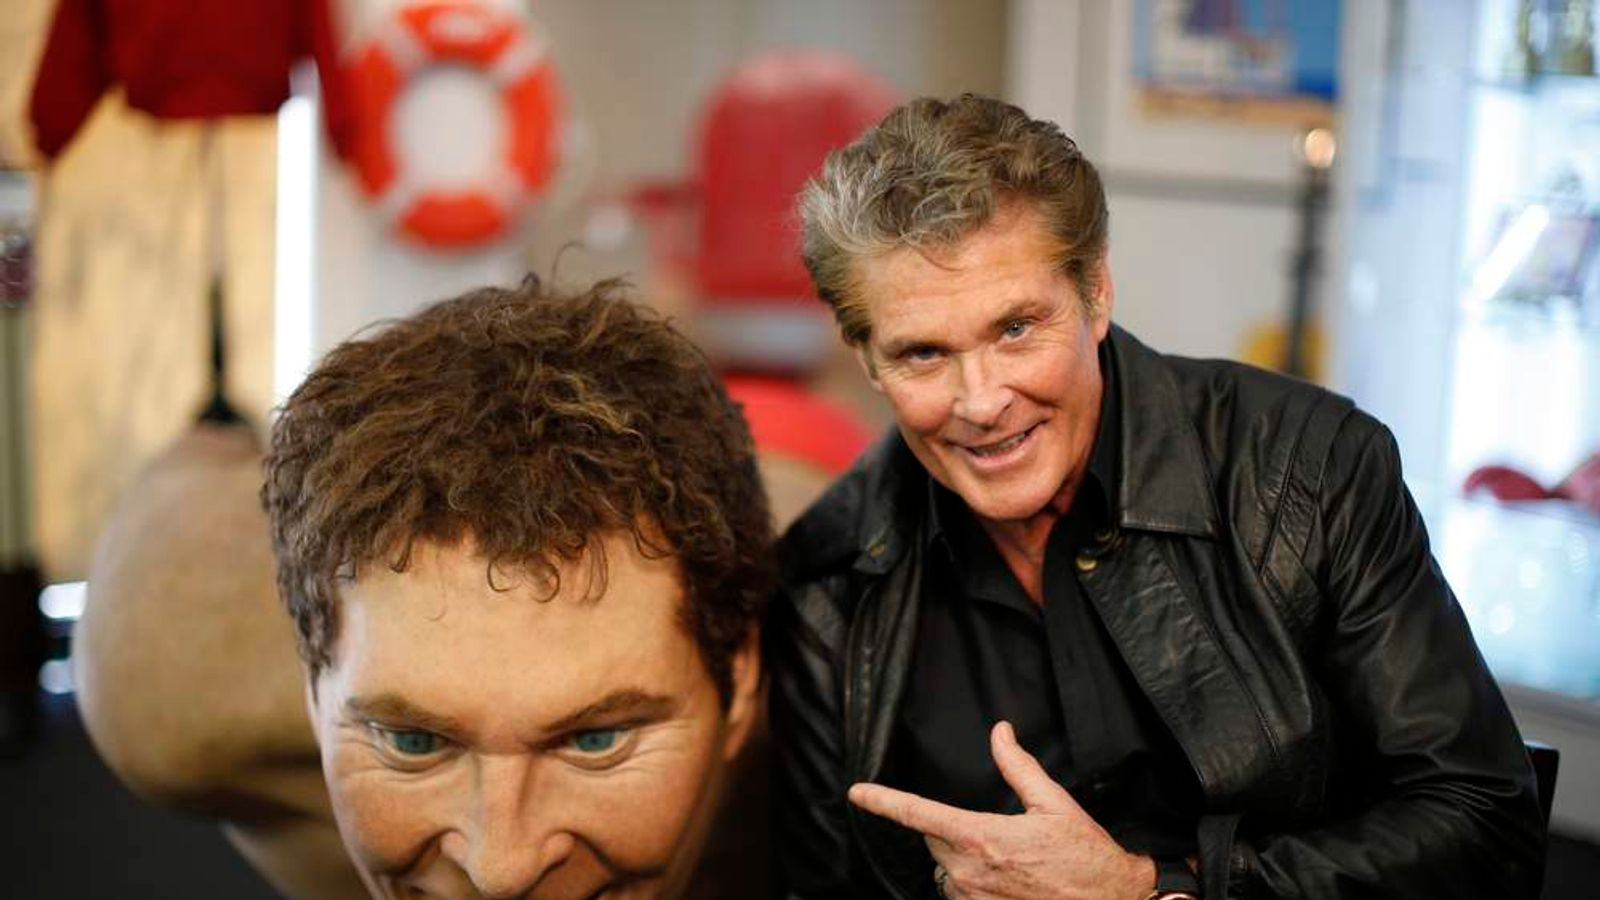 David Hasselhoff poses for portrait in front of belongings he is auctioning in Beverly Hills